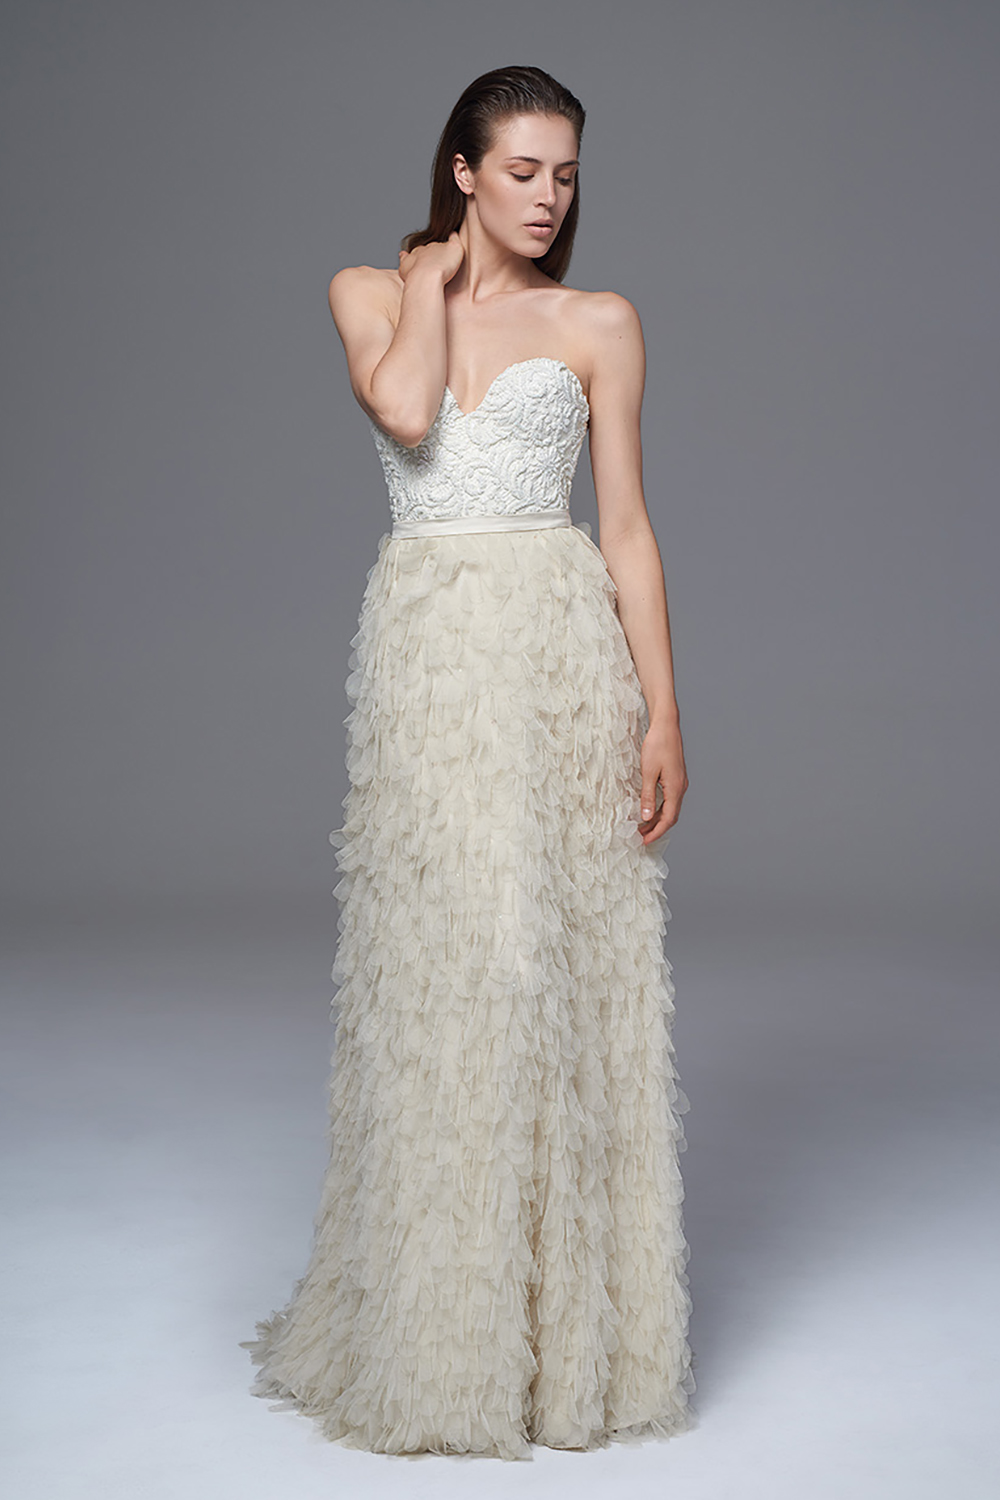 THE FRENCH HAND BEADED LACE DITA BUSTIER WITH THE SWAN SILK TULLE PETAL SKIRT. BRIDAL WEDDING DRESS BY HALFPENNY LONDON